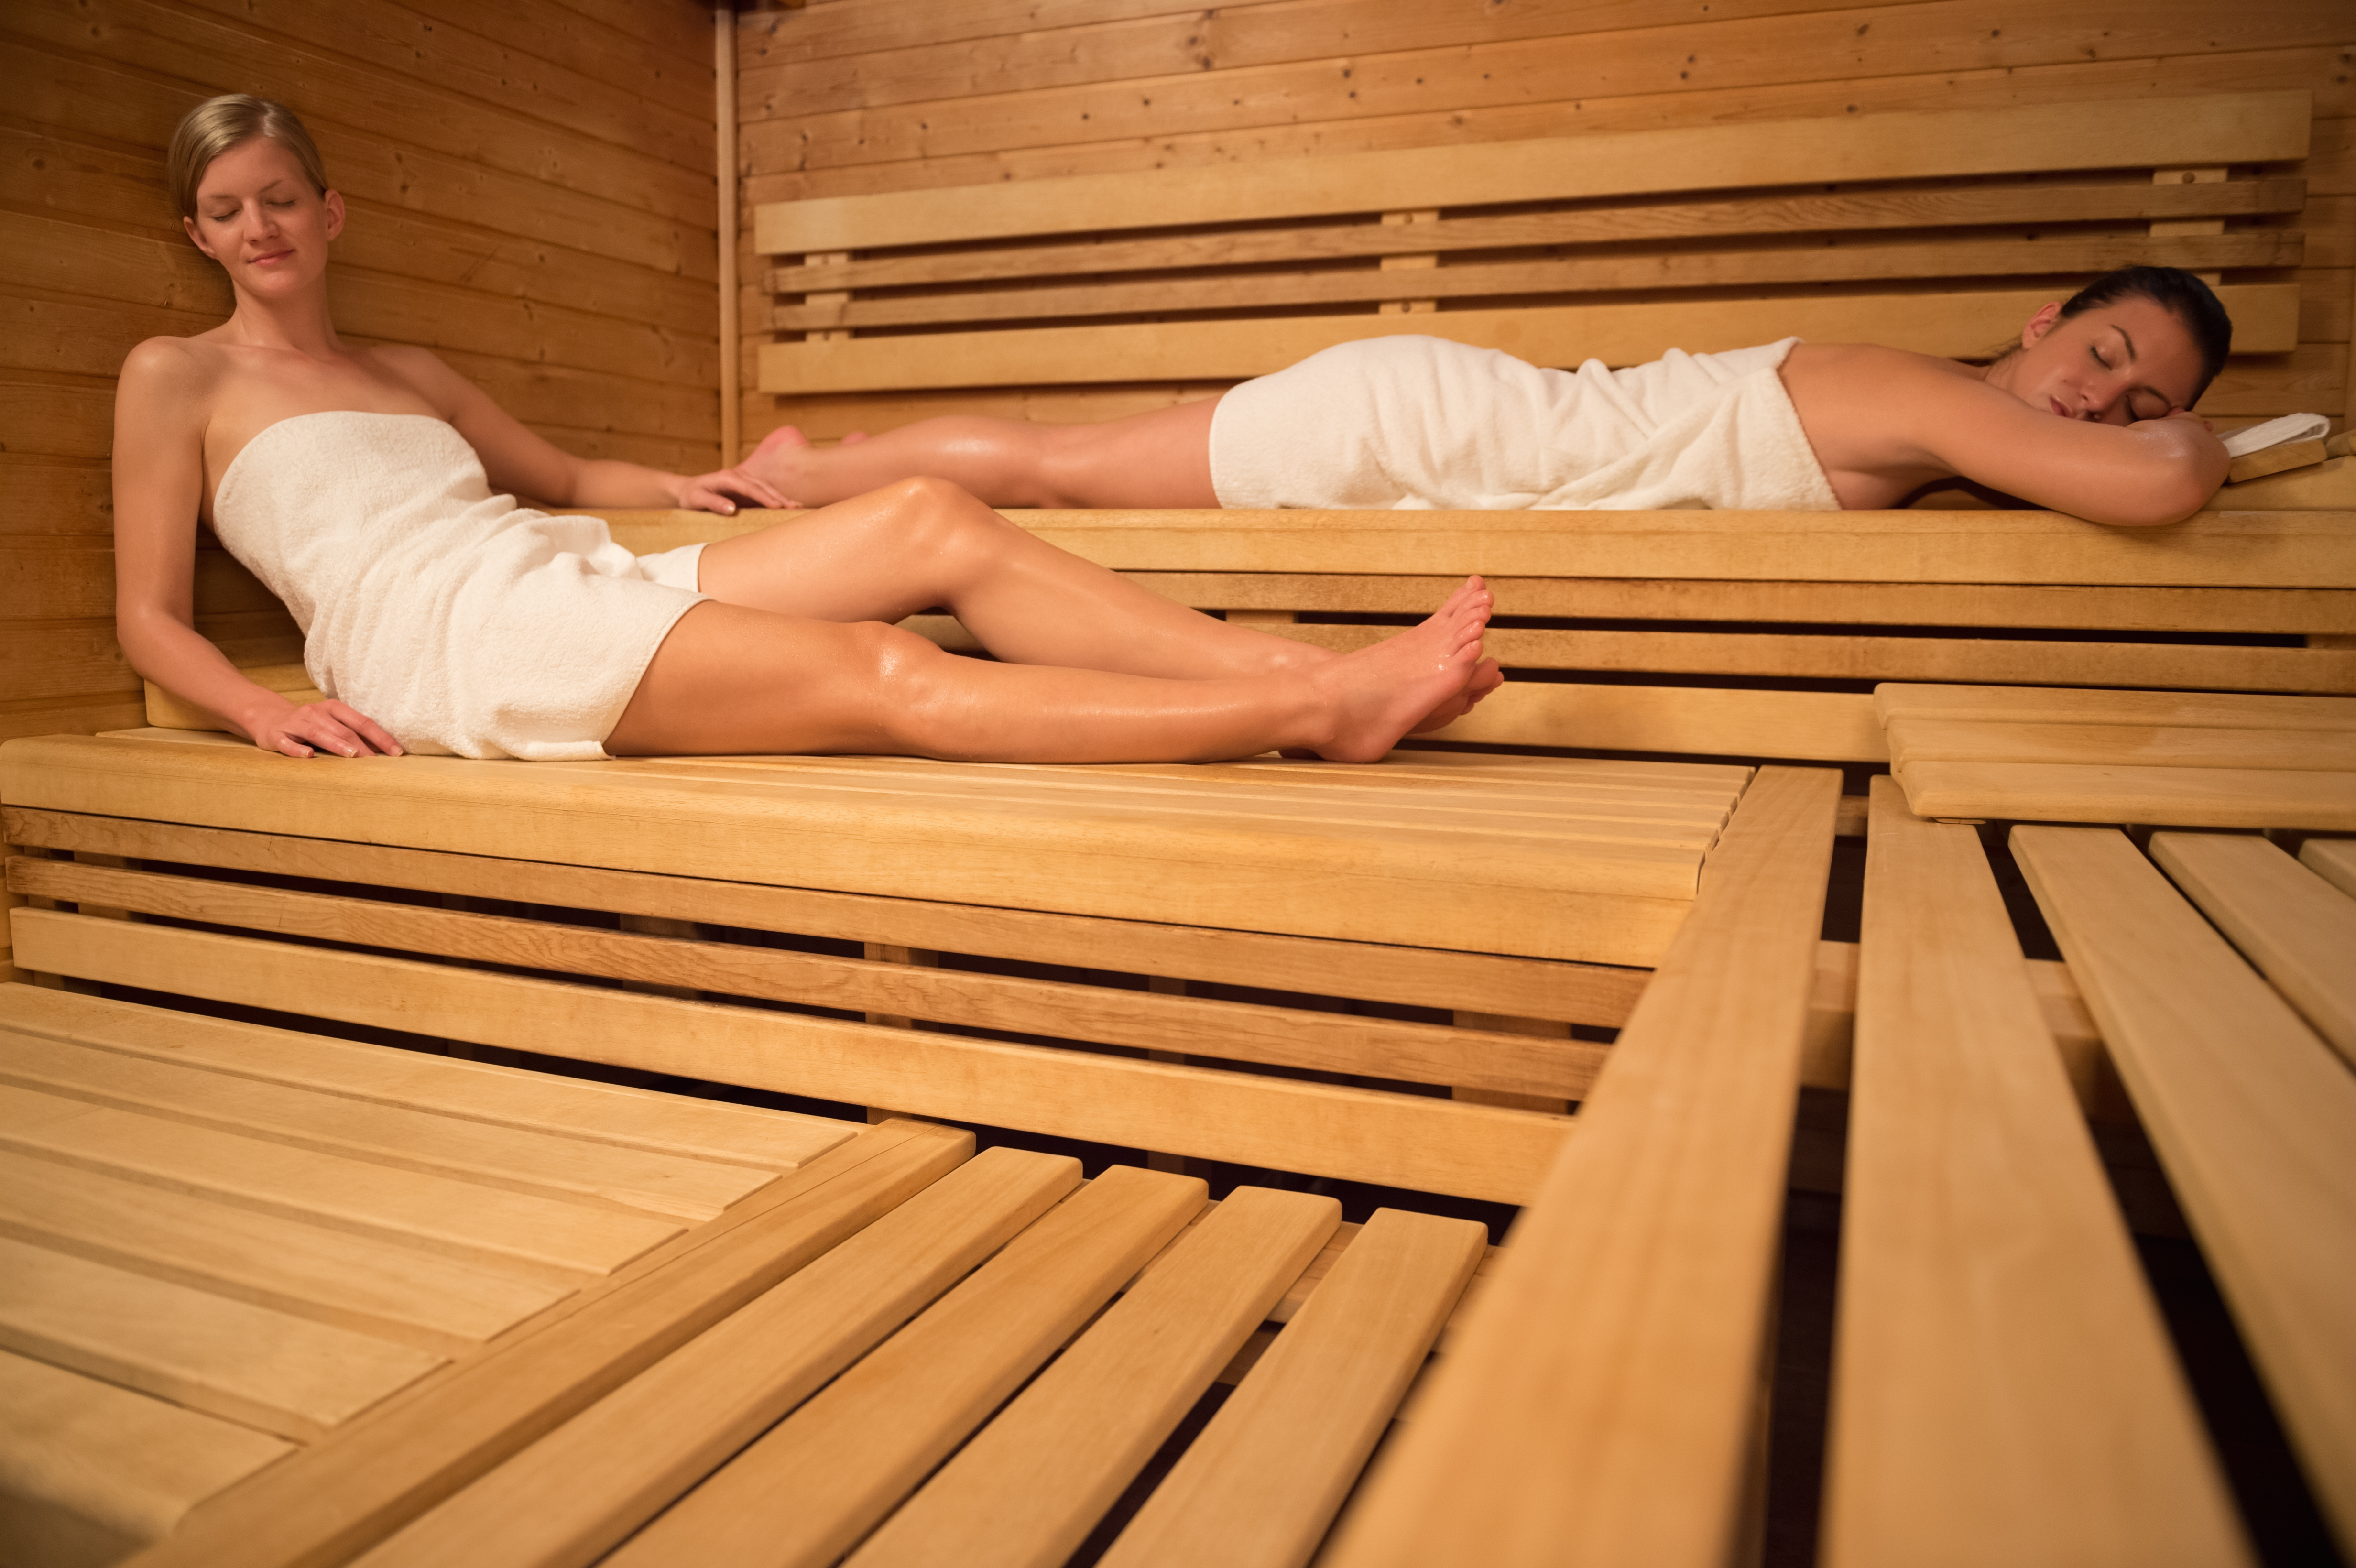 Two women relaxing on wooden benches in sauna. Trying a Nordic Spa in Québec City offers the chance to experience a choice of thermotherapies.